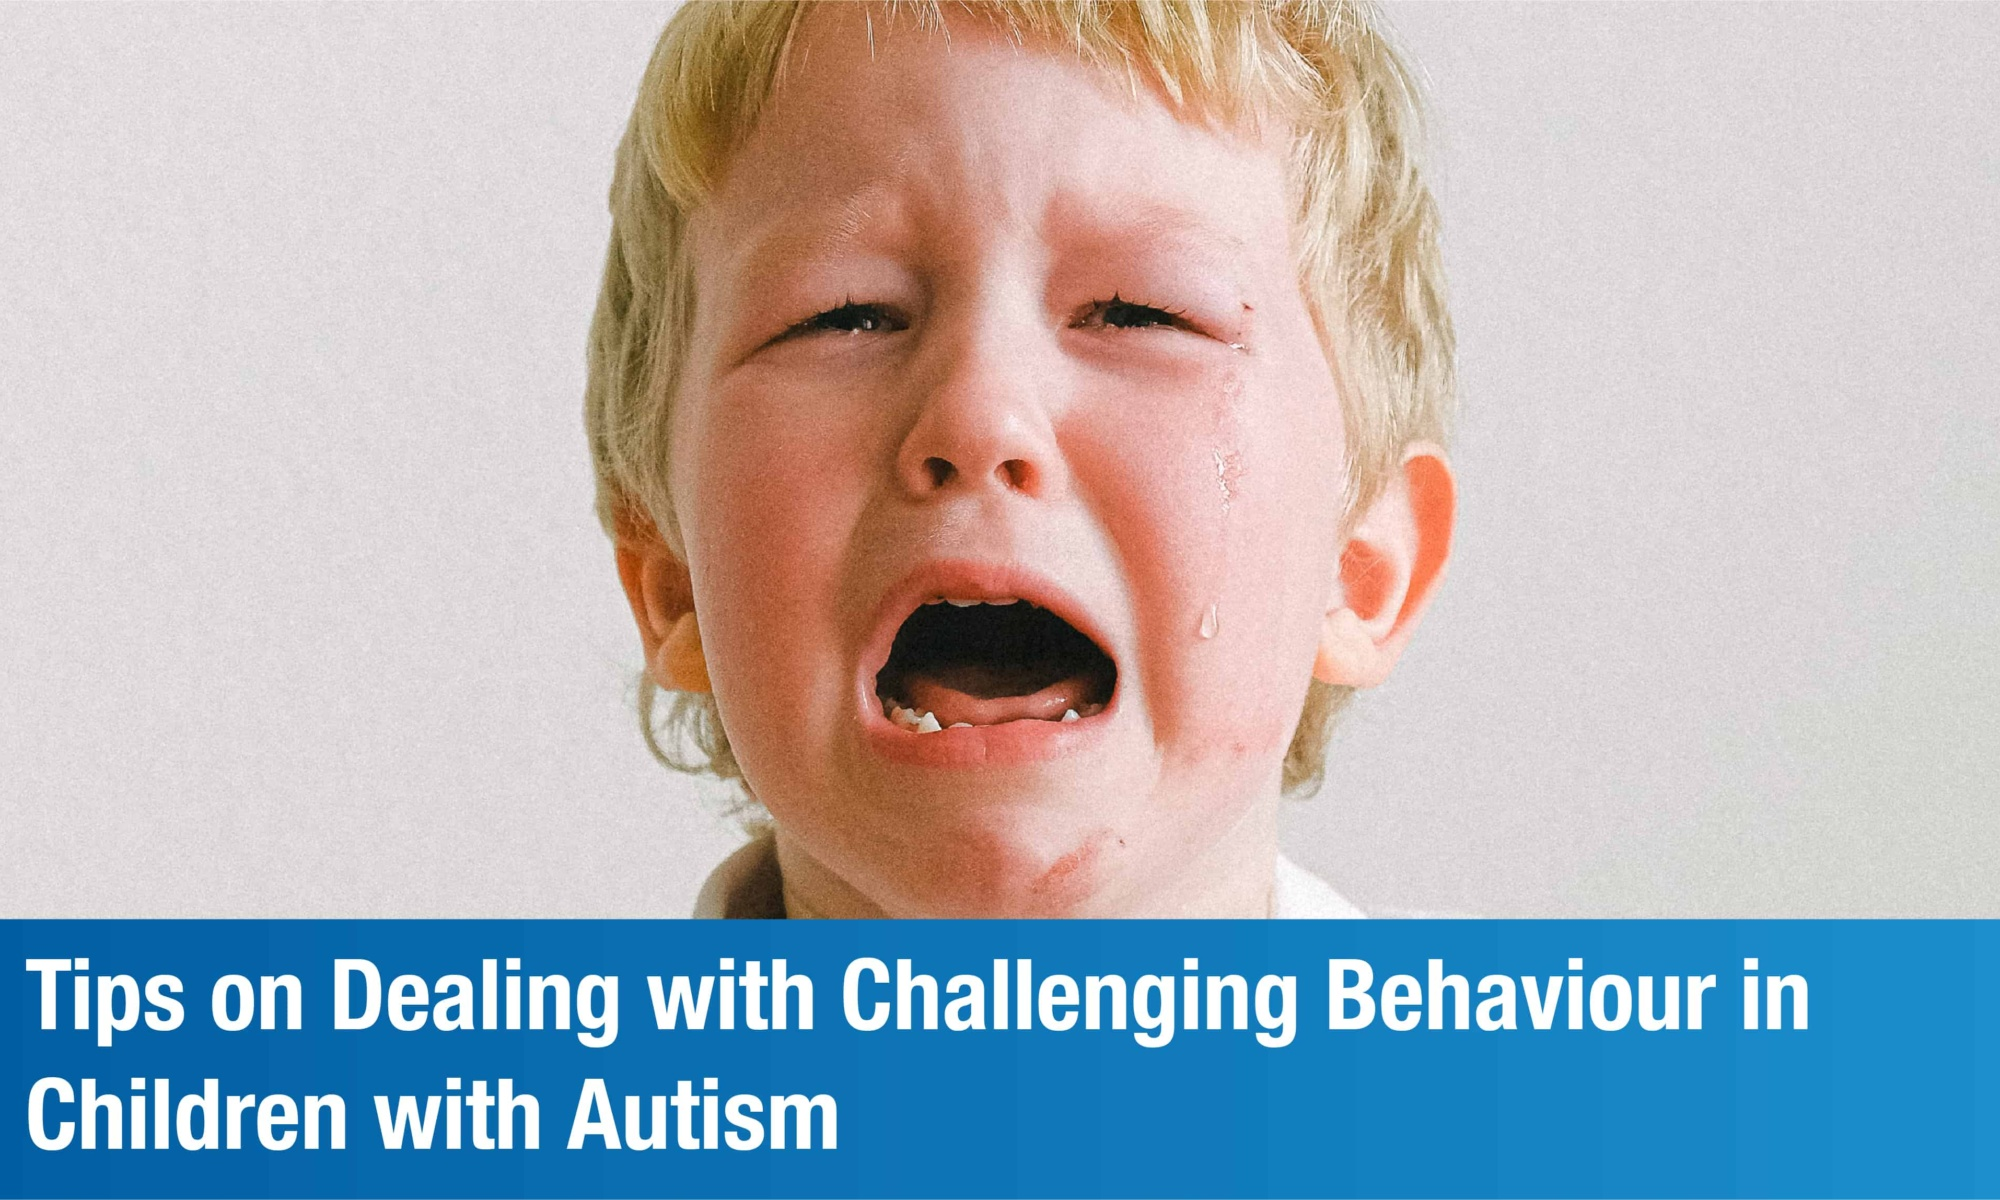 Tips on Dealing with Challenging Behaviour in Children with Autism